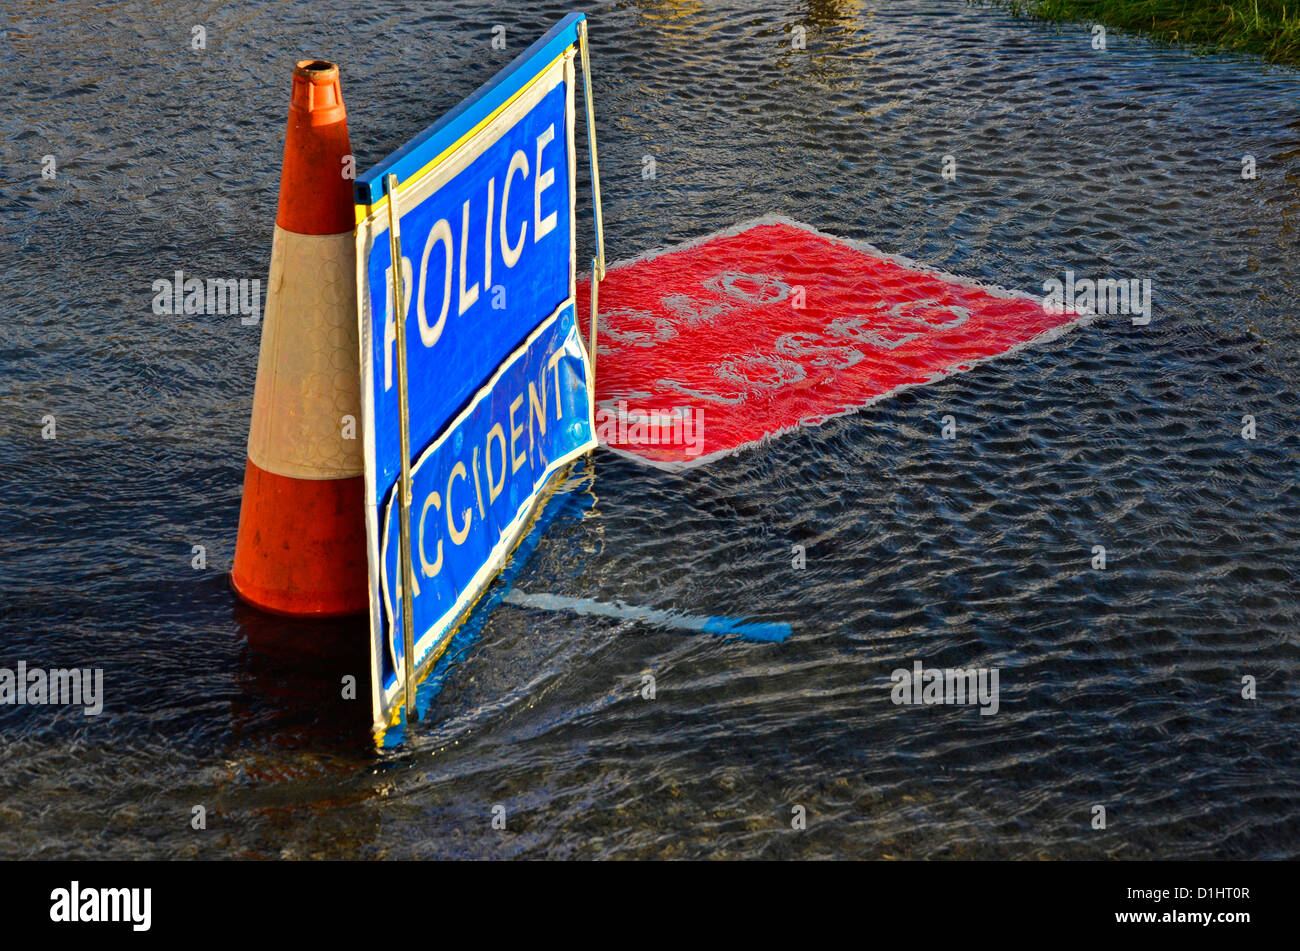 Temporary signs blue Police accident and red road closed Stock Photo